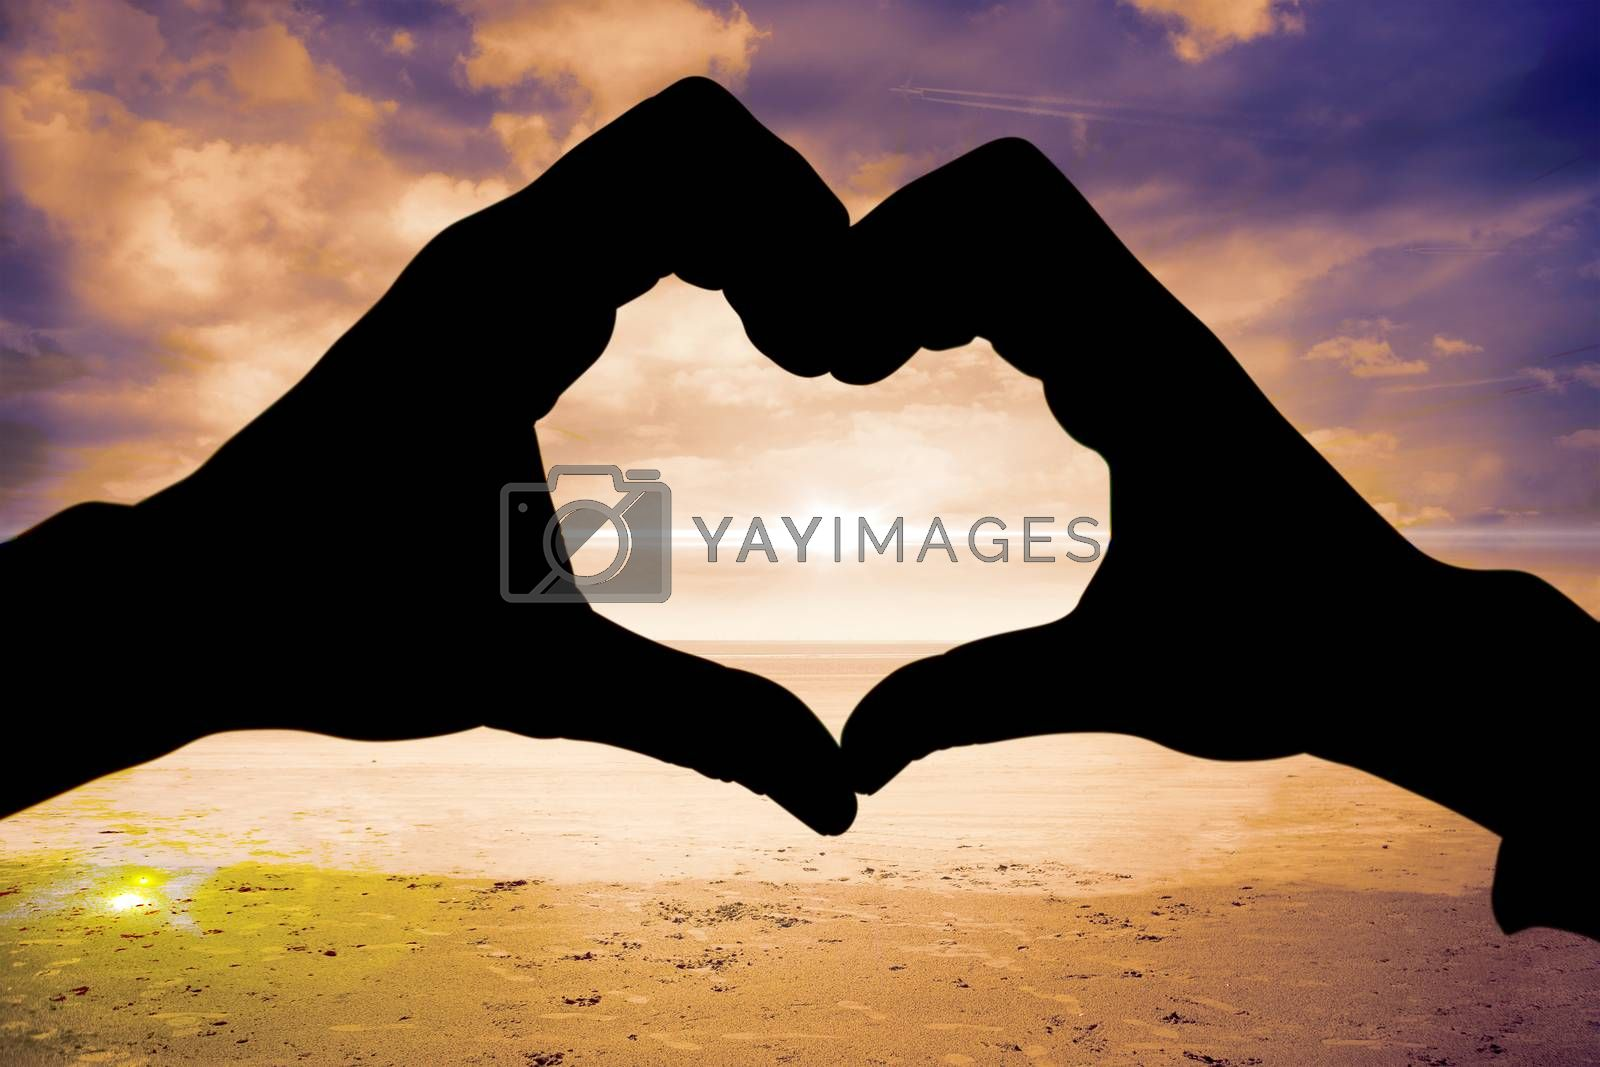 Couple making heart shape with hands against serene beach landscape